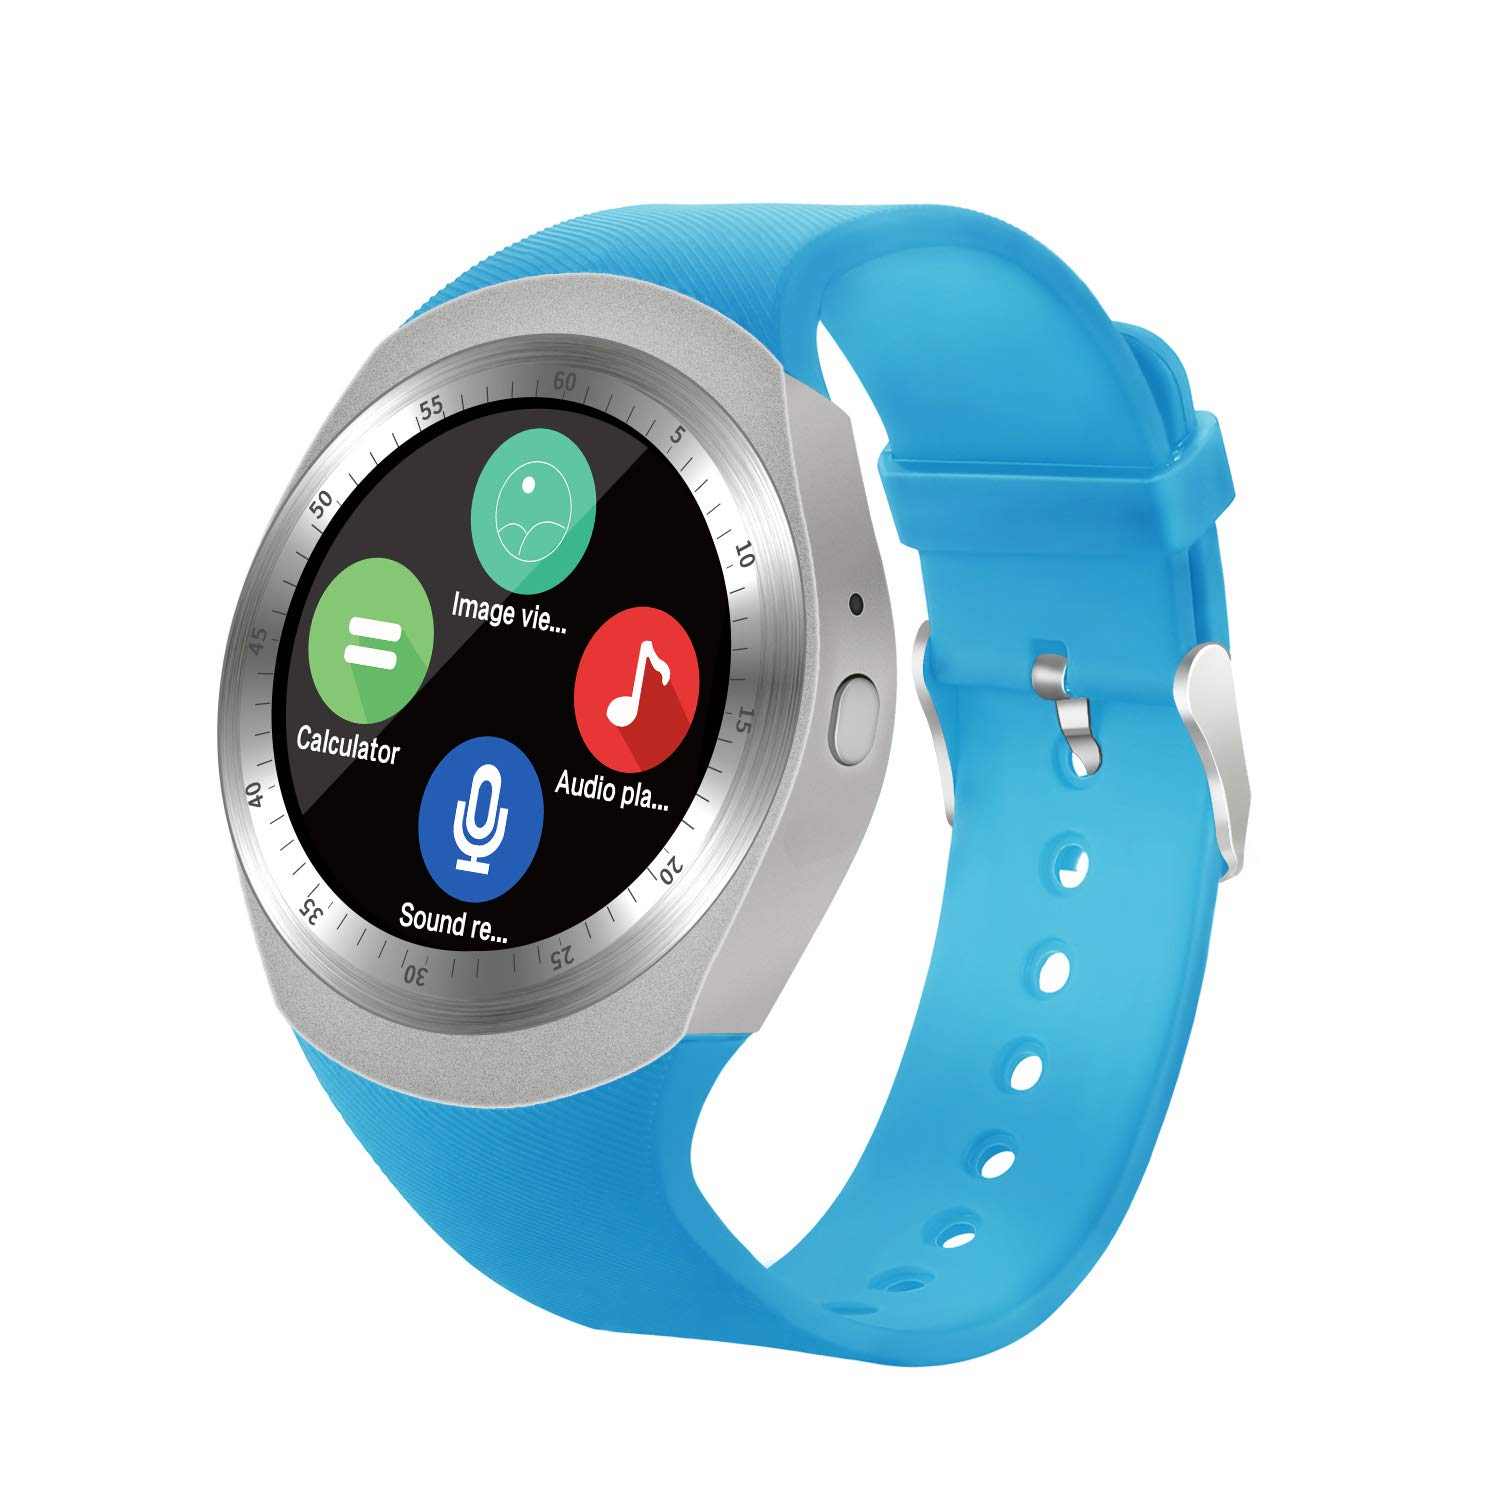 Bluetooth Smart Watch Unlocked Cell Phone Watch with SIM Card Slot Smartwatch for Samsung LG HTC Sony Google Huawei Xiaomi Android Smart Phones (Blue)